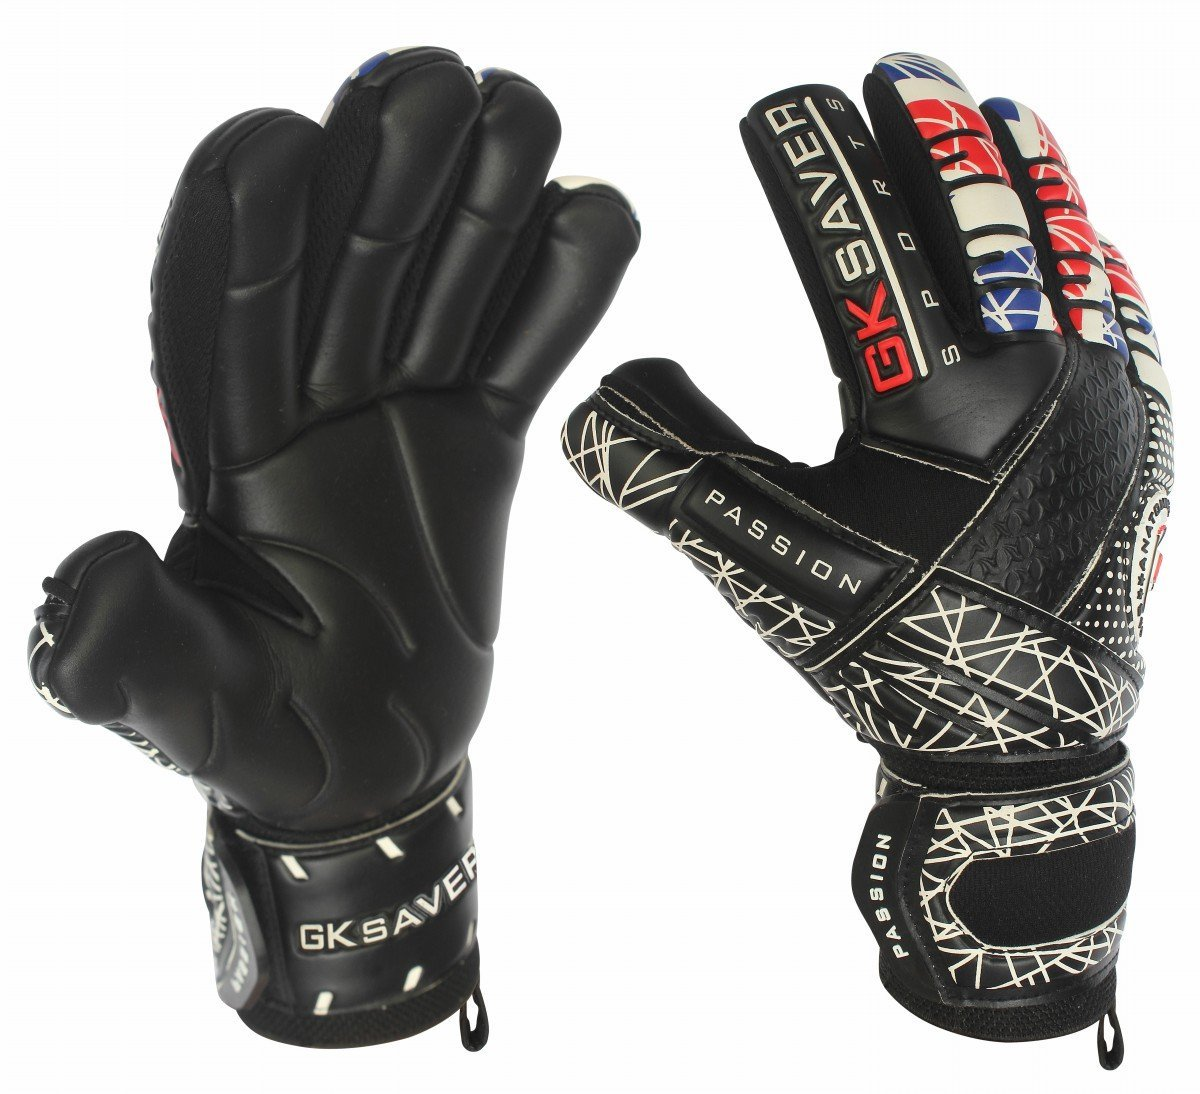 Gksaver Football Goalkeeper Gloves Negative Cut Passion Black//Yellow pro Keeper Quality Gloves Size 6 to 11